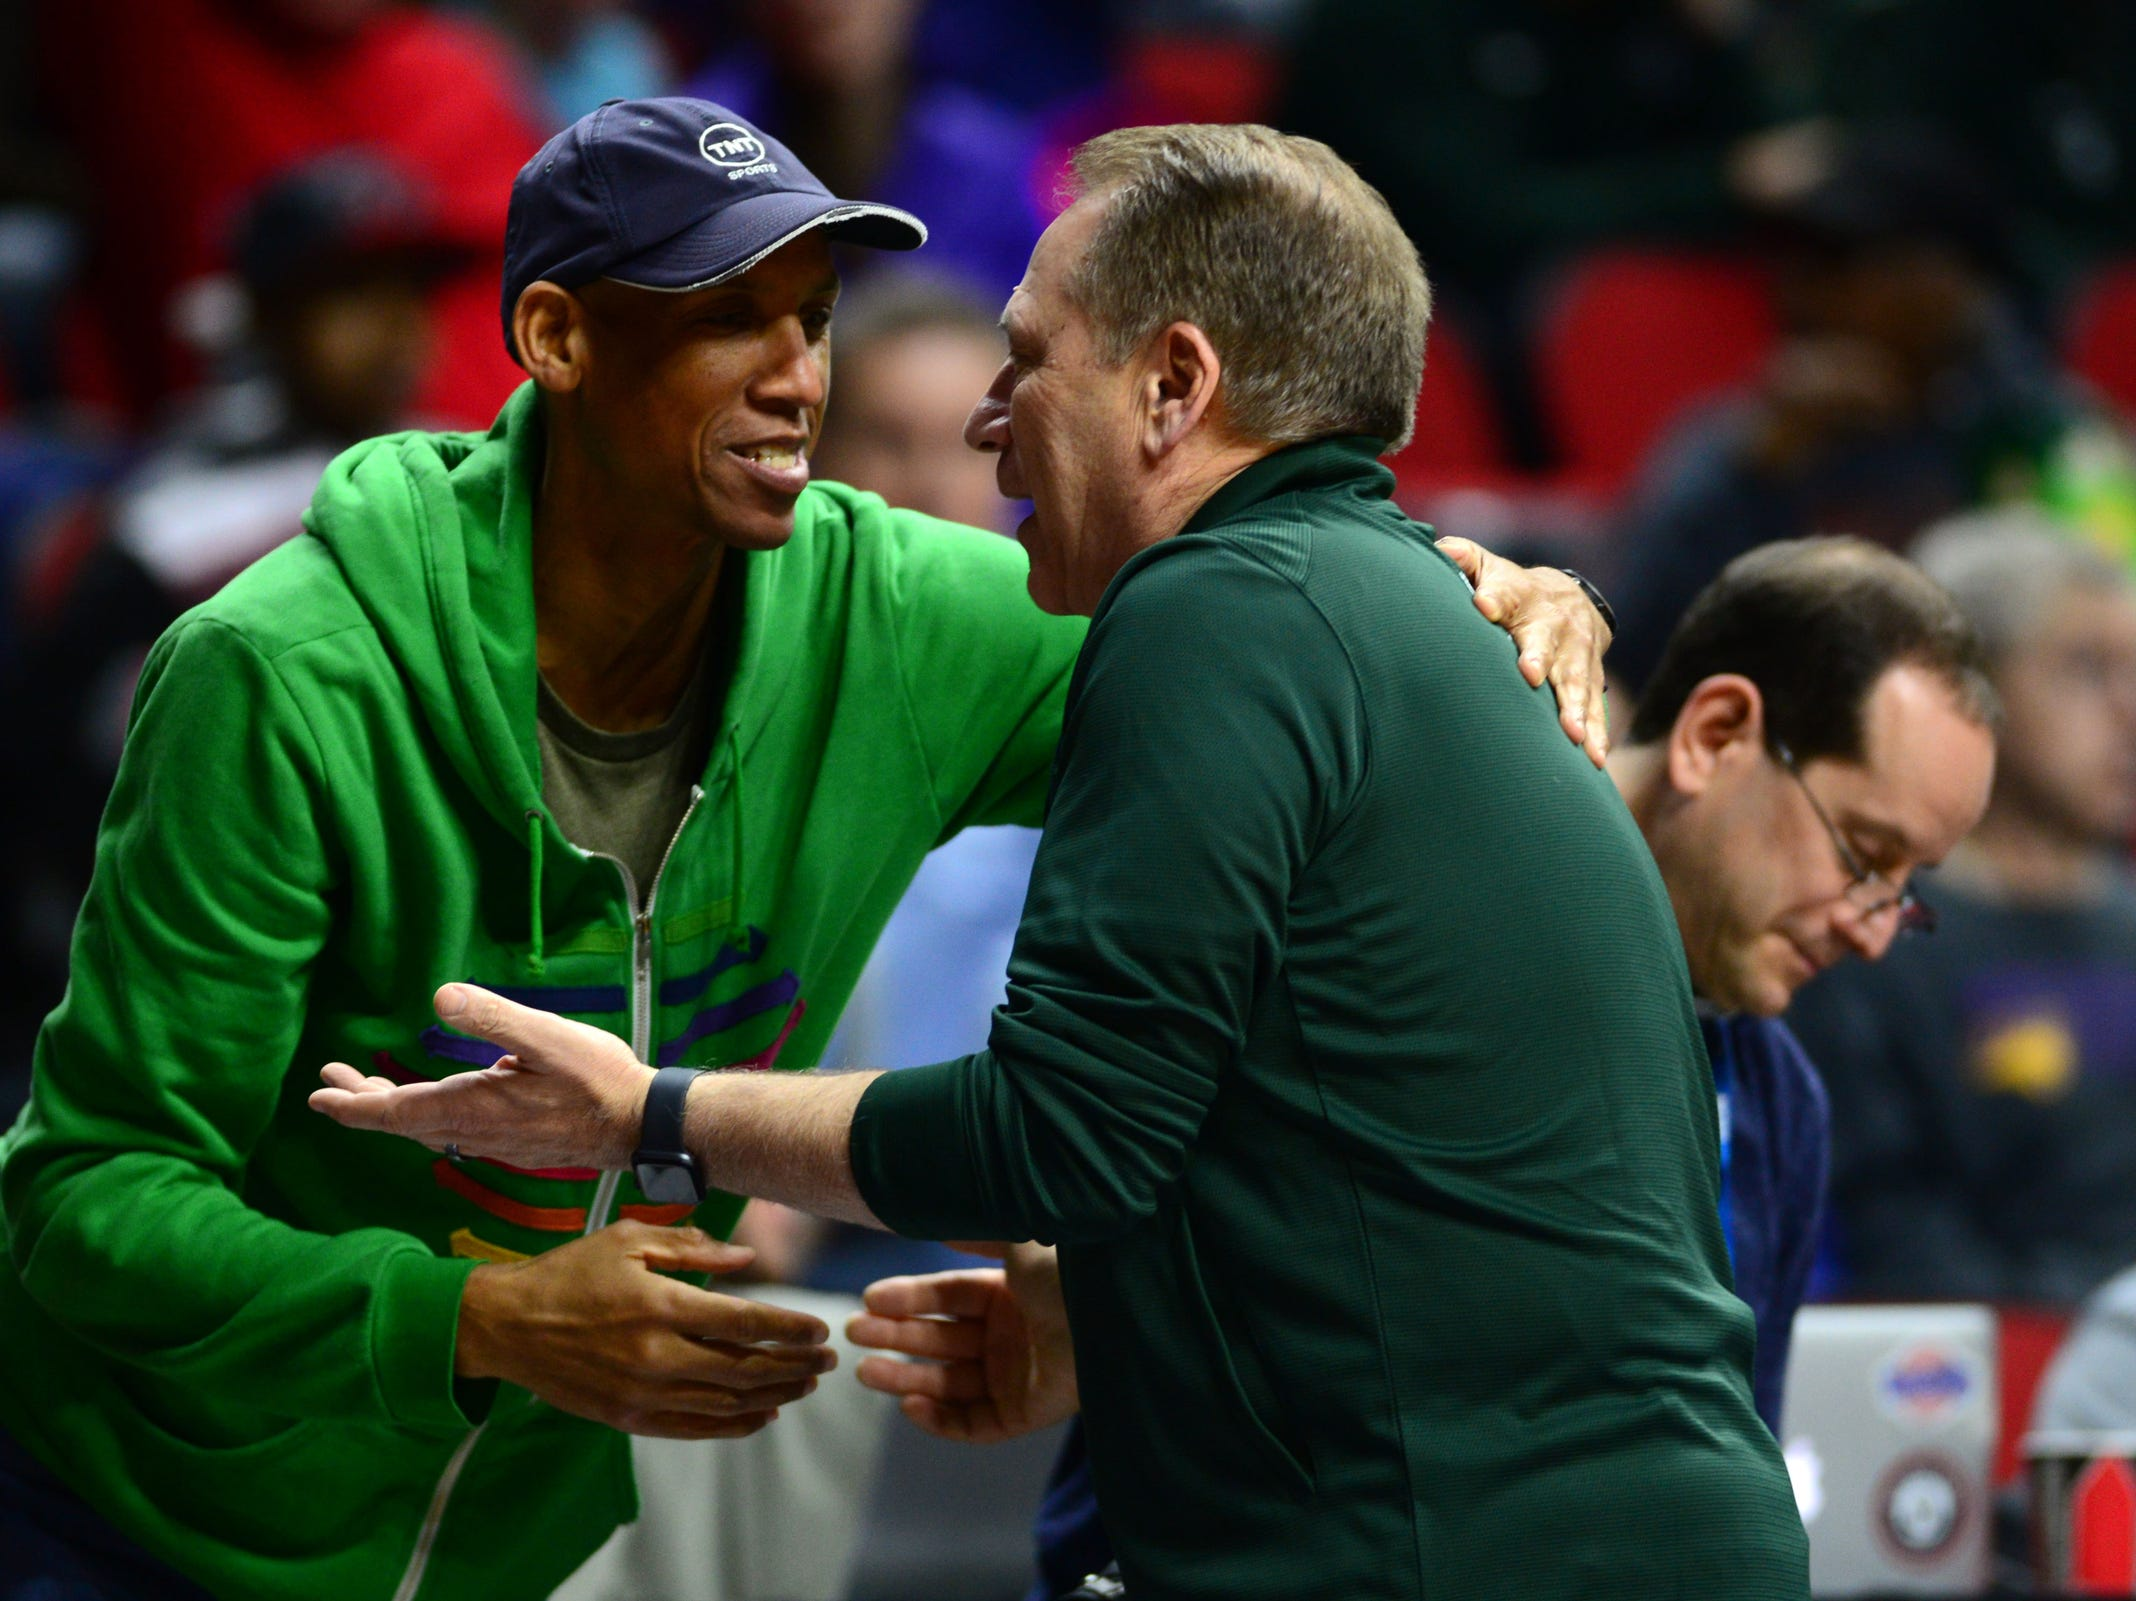 Mar 20, 2019; Des Moines, IA, USA; Michigan State Spartans head coach Tom Izzo hugs TNT analyst Reggie Miller during practice before the first round of the 2019 NCAA Tournament at Wells Fargo Arena. Mandatory Credit: Steven Branscombe-USA TODAY Sports